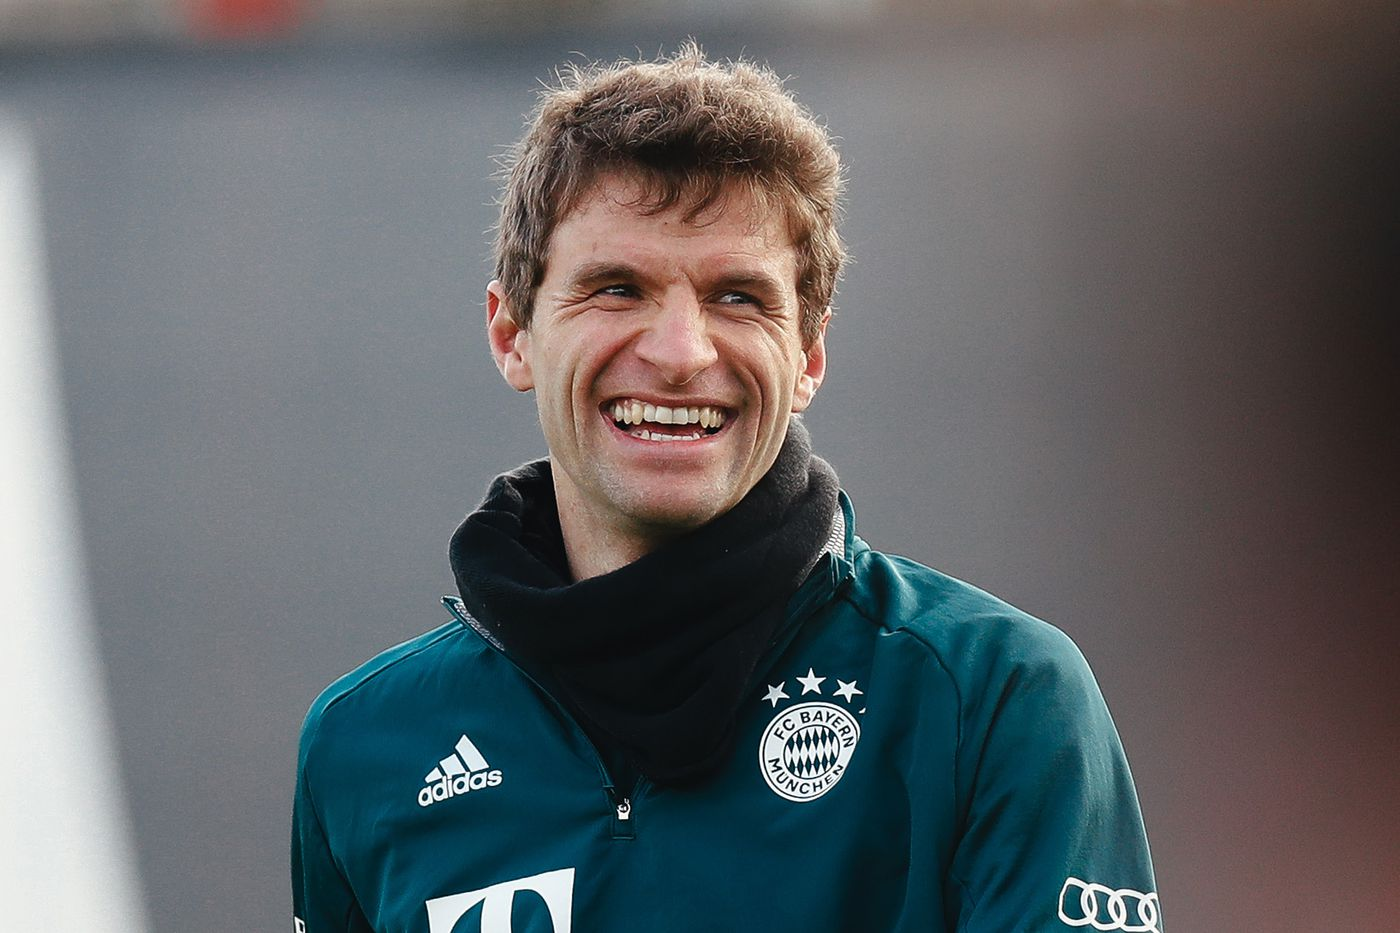 Official: Thomas Muller returns to training at Bayern Munich - Bavarian  Football Works